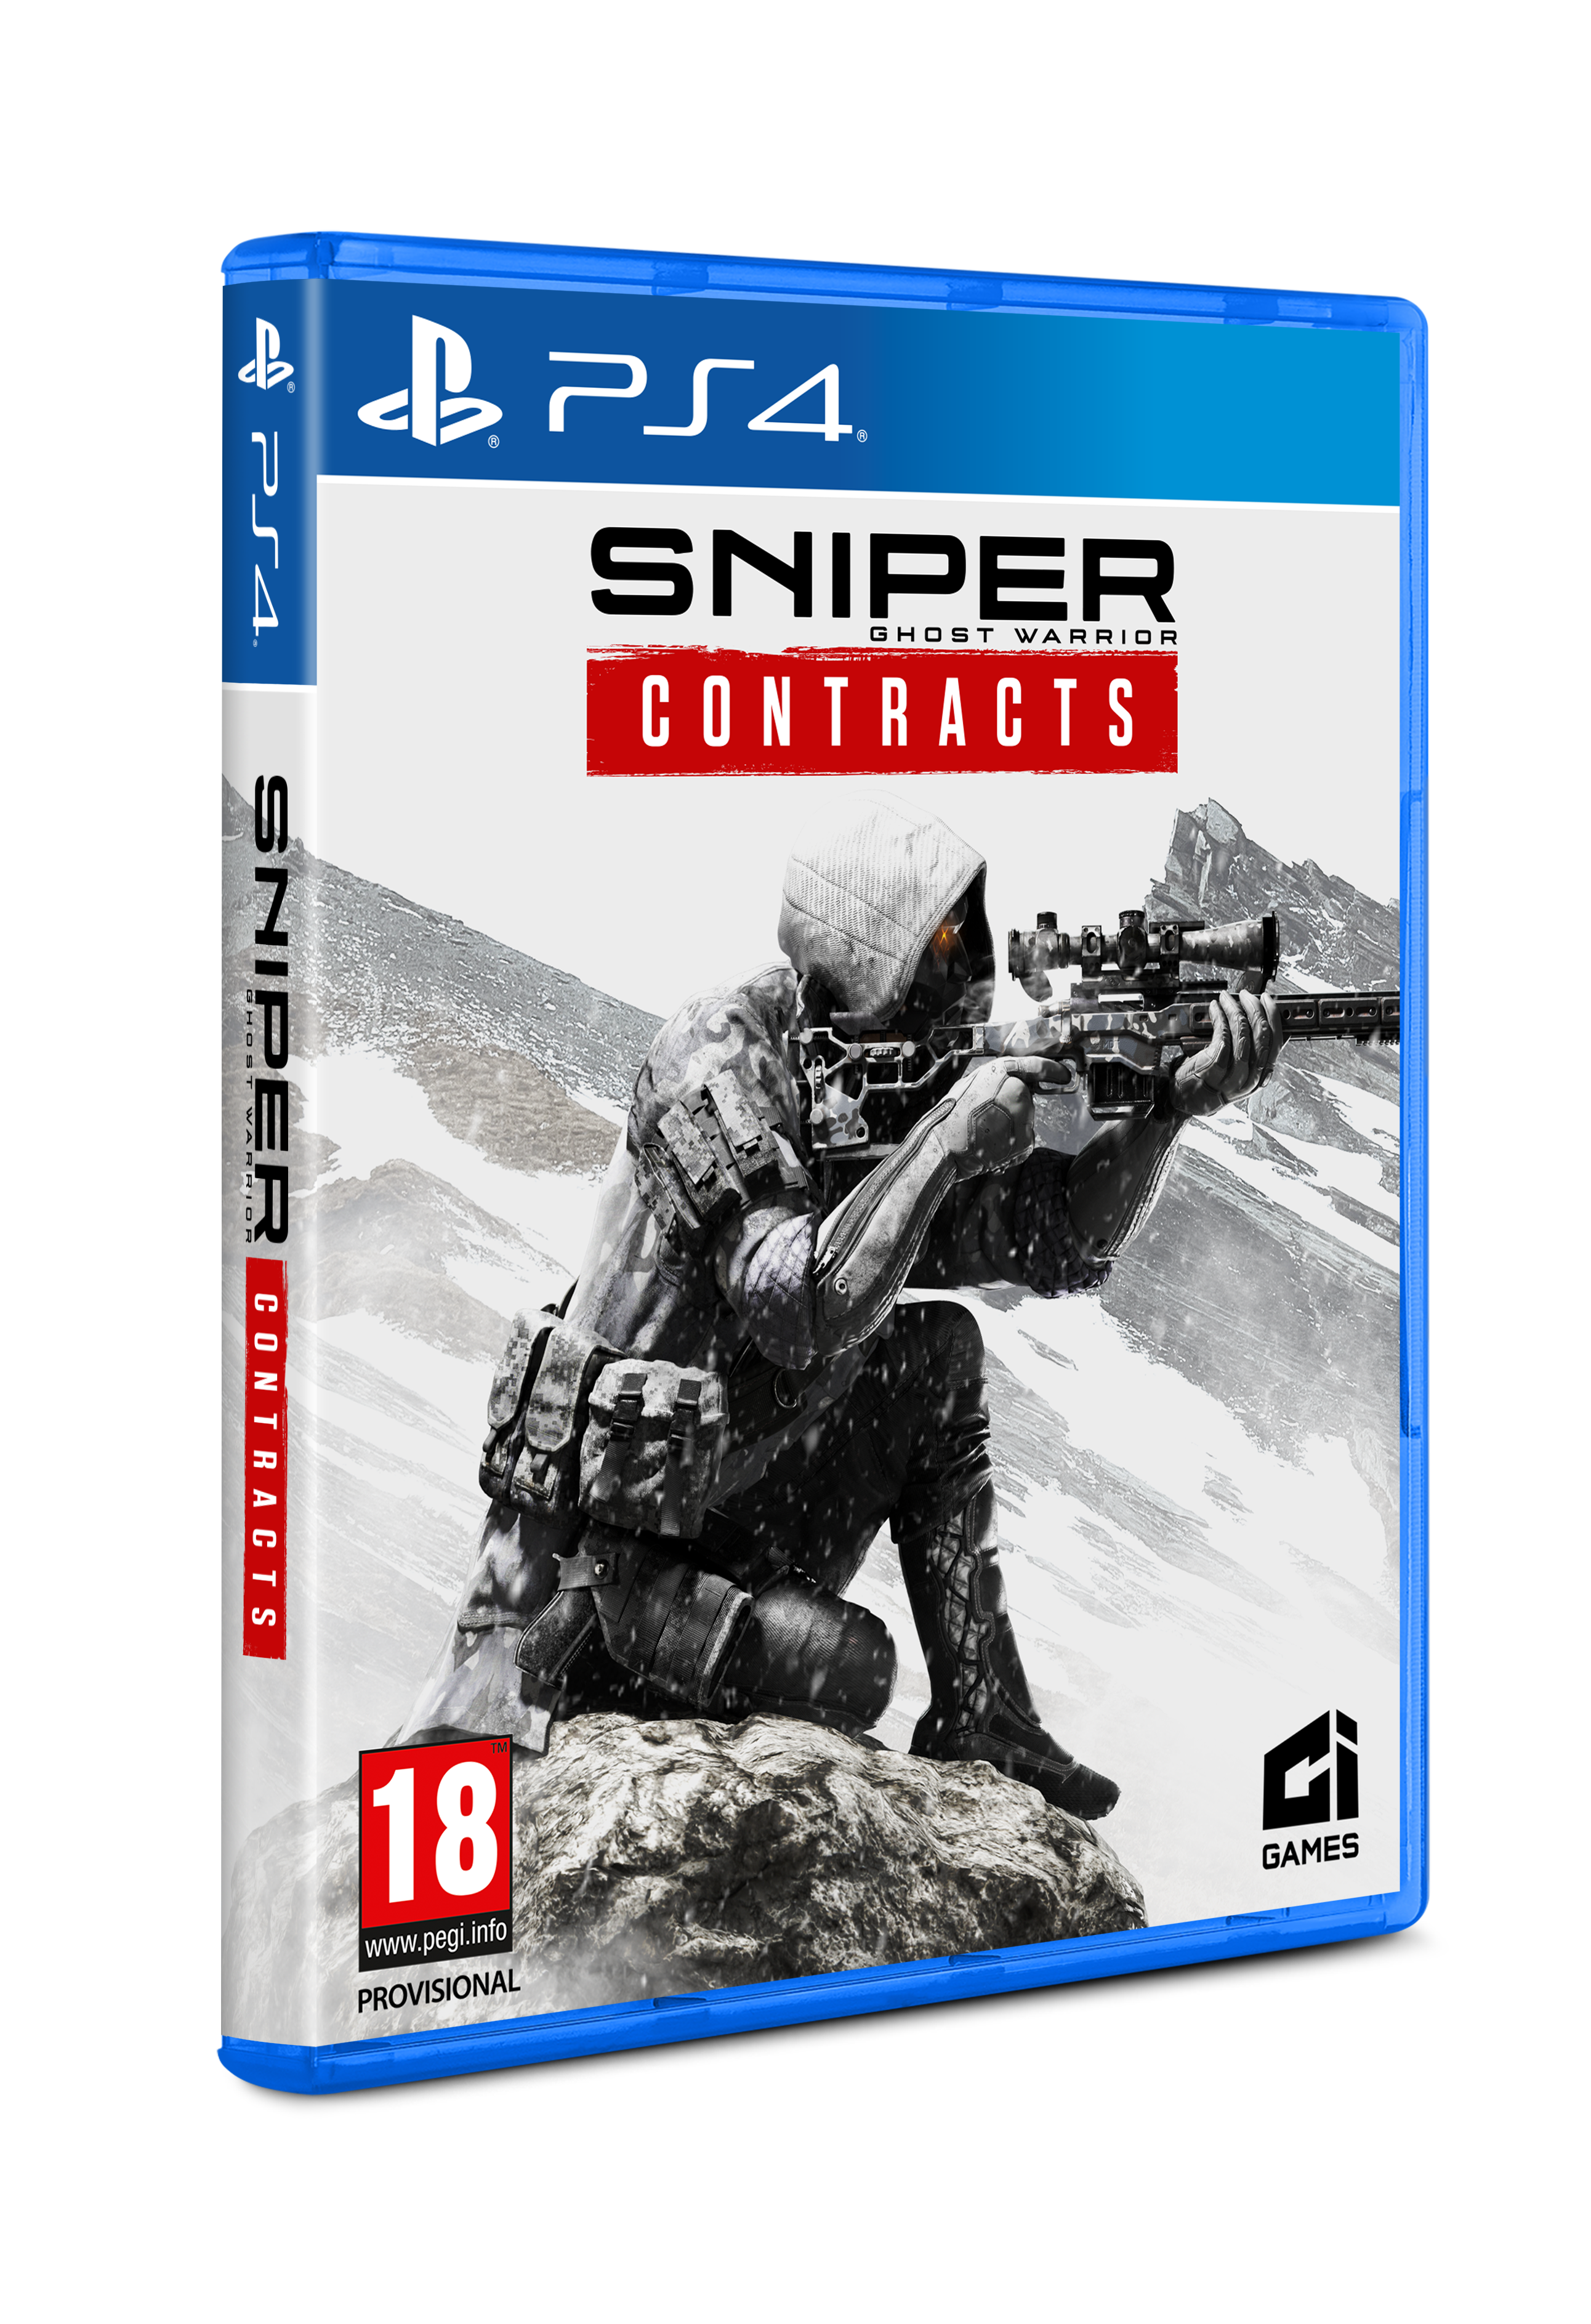 Sniper Ghost Warrior Contracts Ps4 Game For Sale Online Ebay